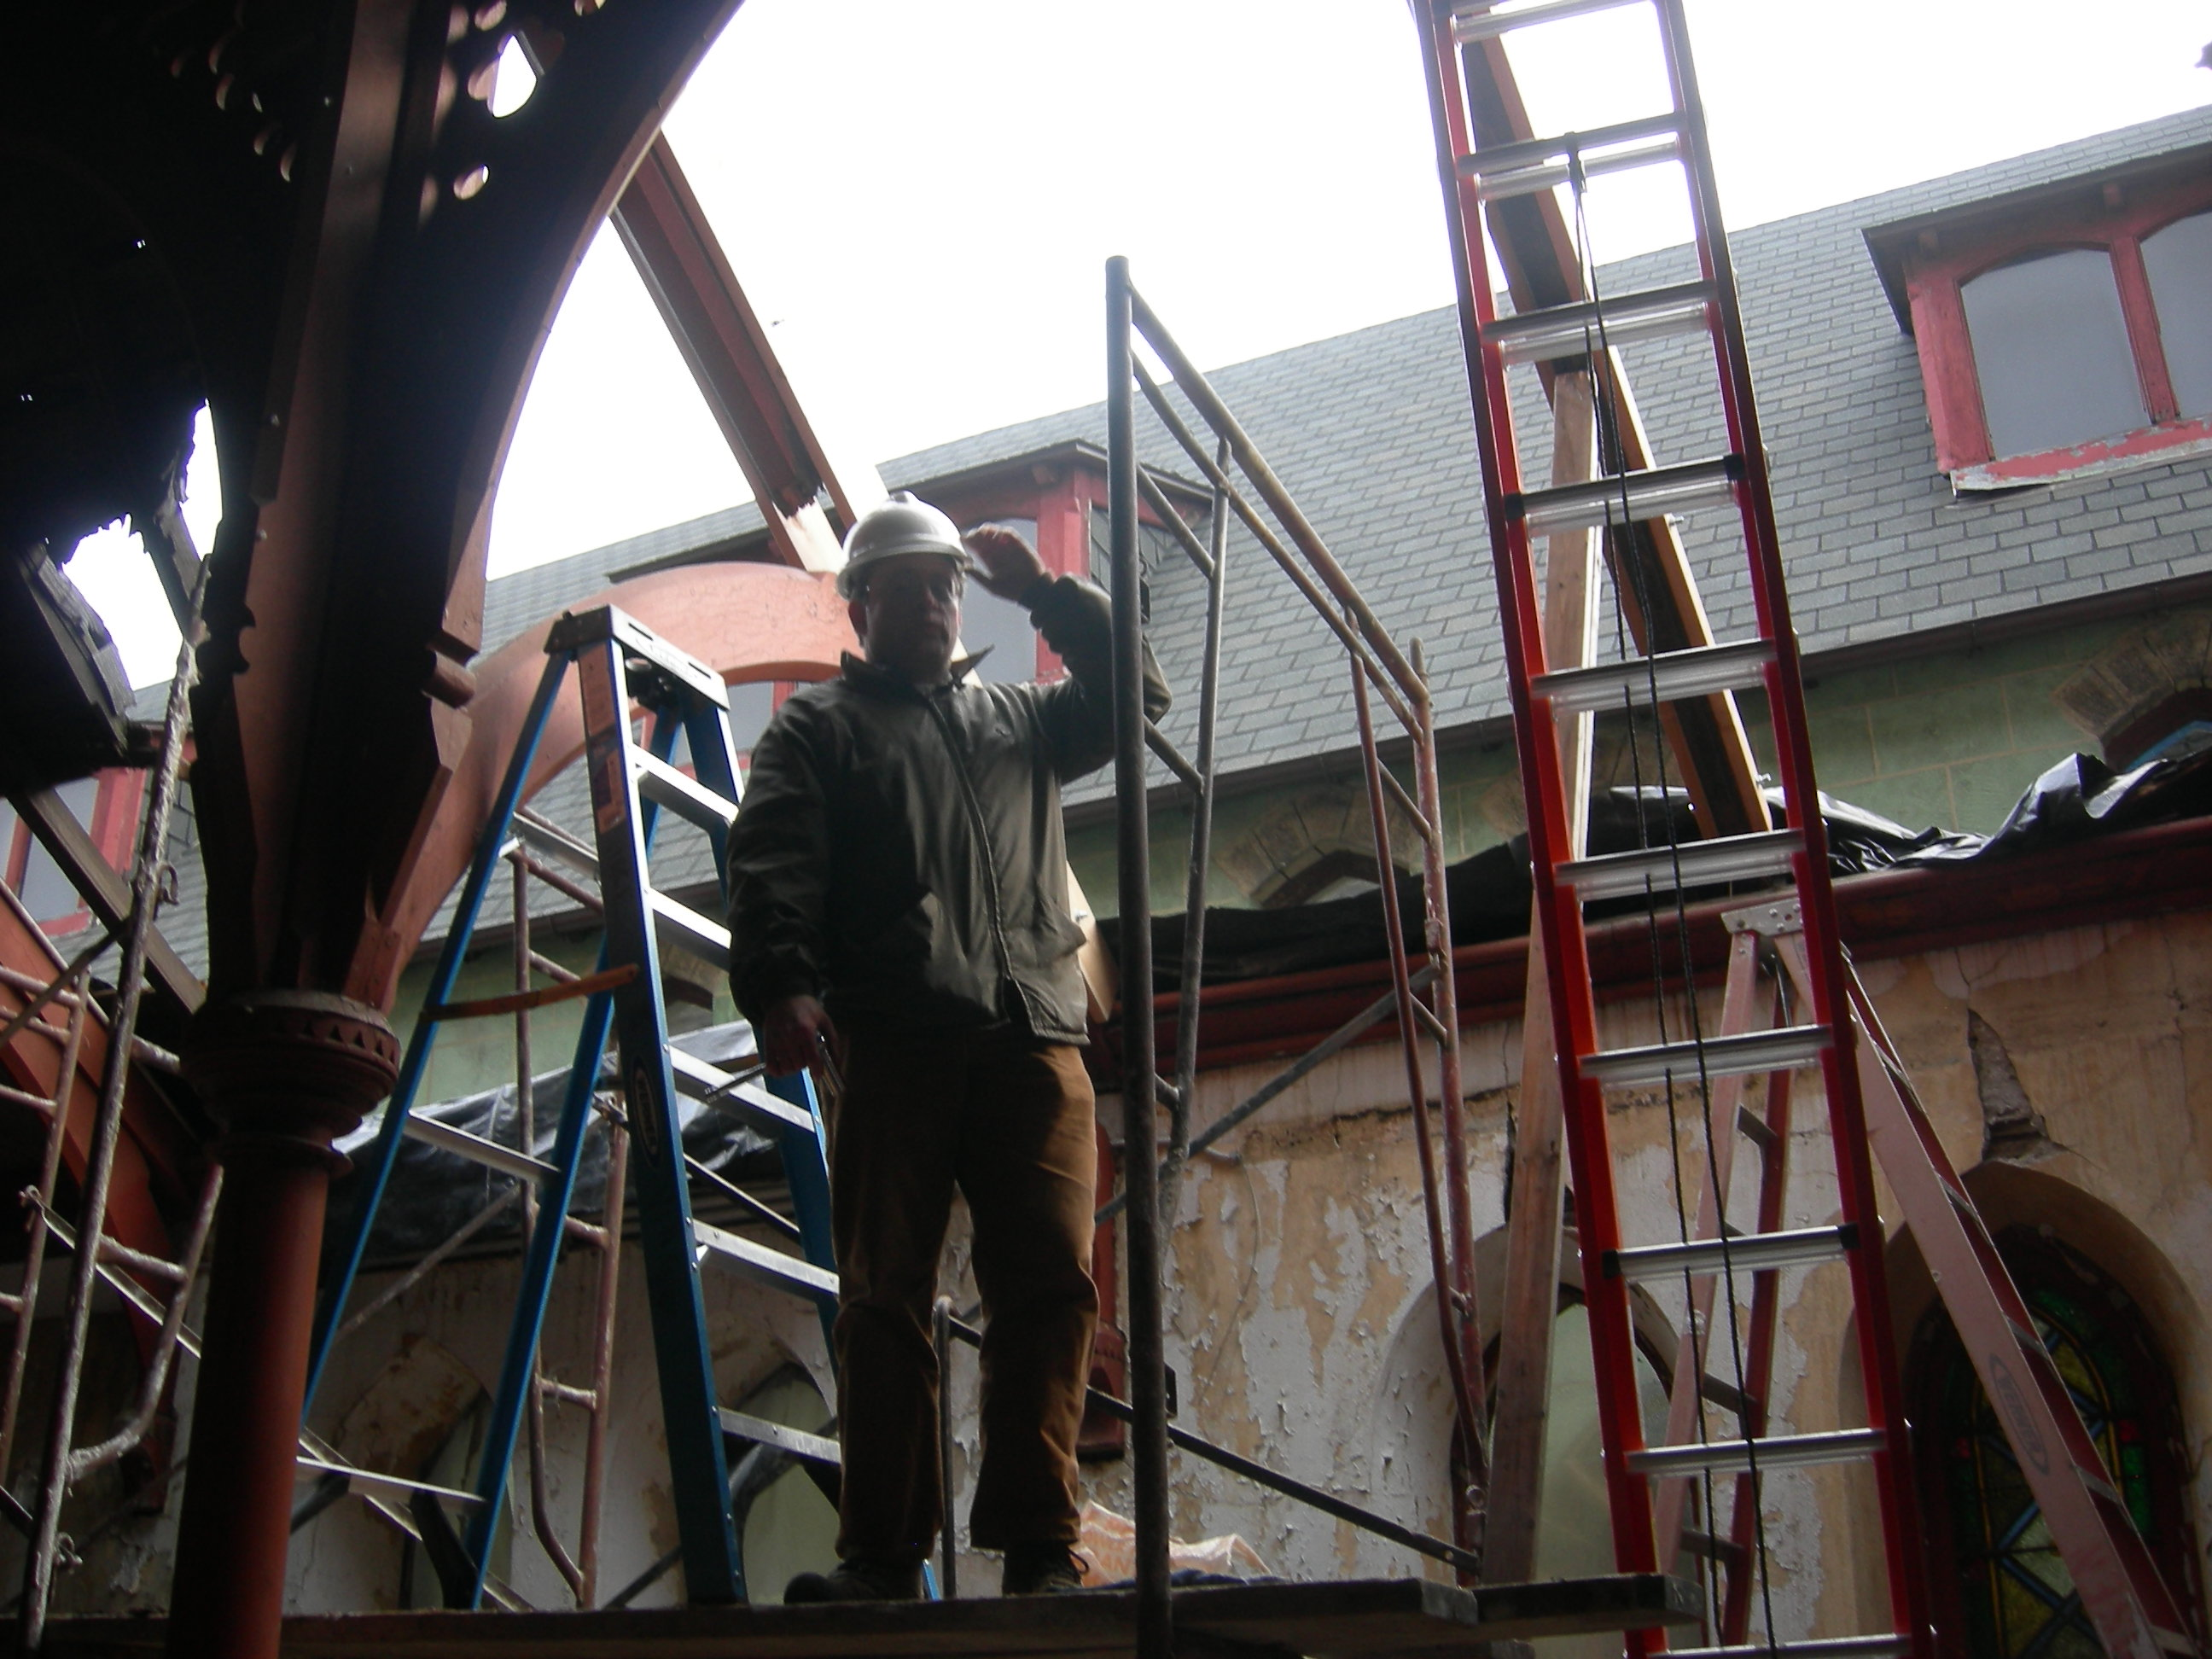 Aaron Wunsch, professor in PennDesign's historic preservation program, on scaffolding during roof repairs. | photo by Melissa Jest, Preservation Alliance for Greater Philadelphia